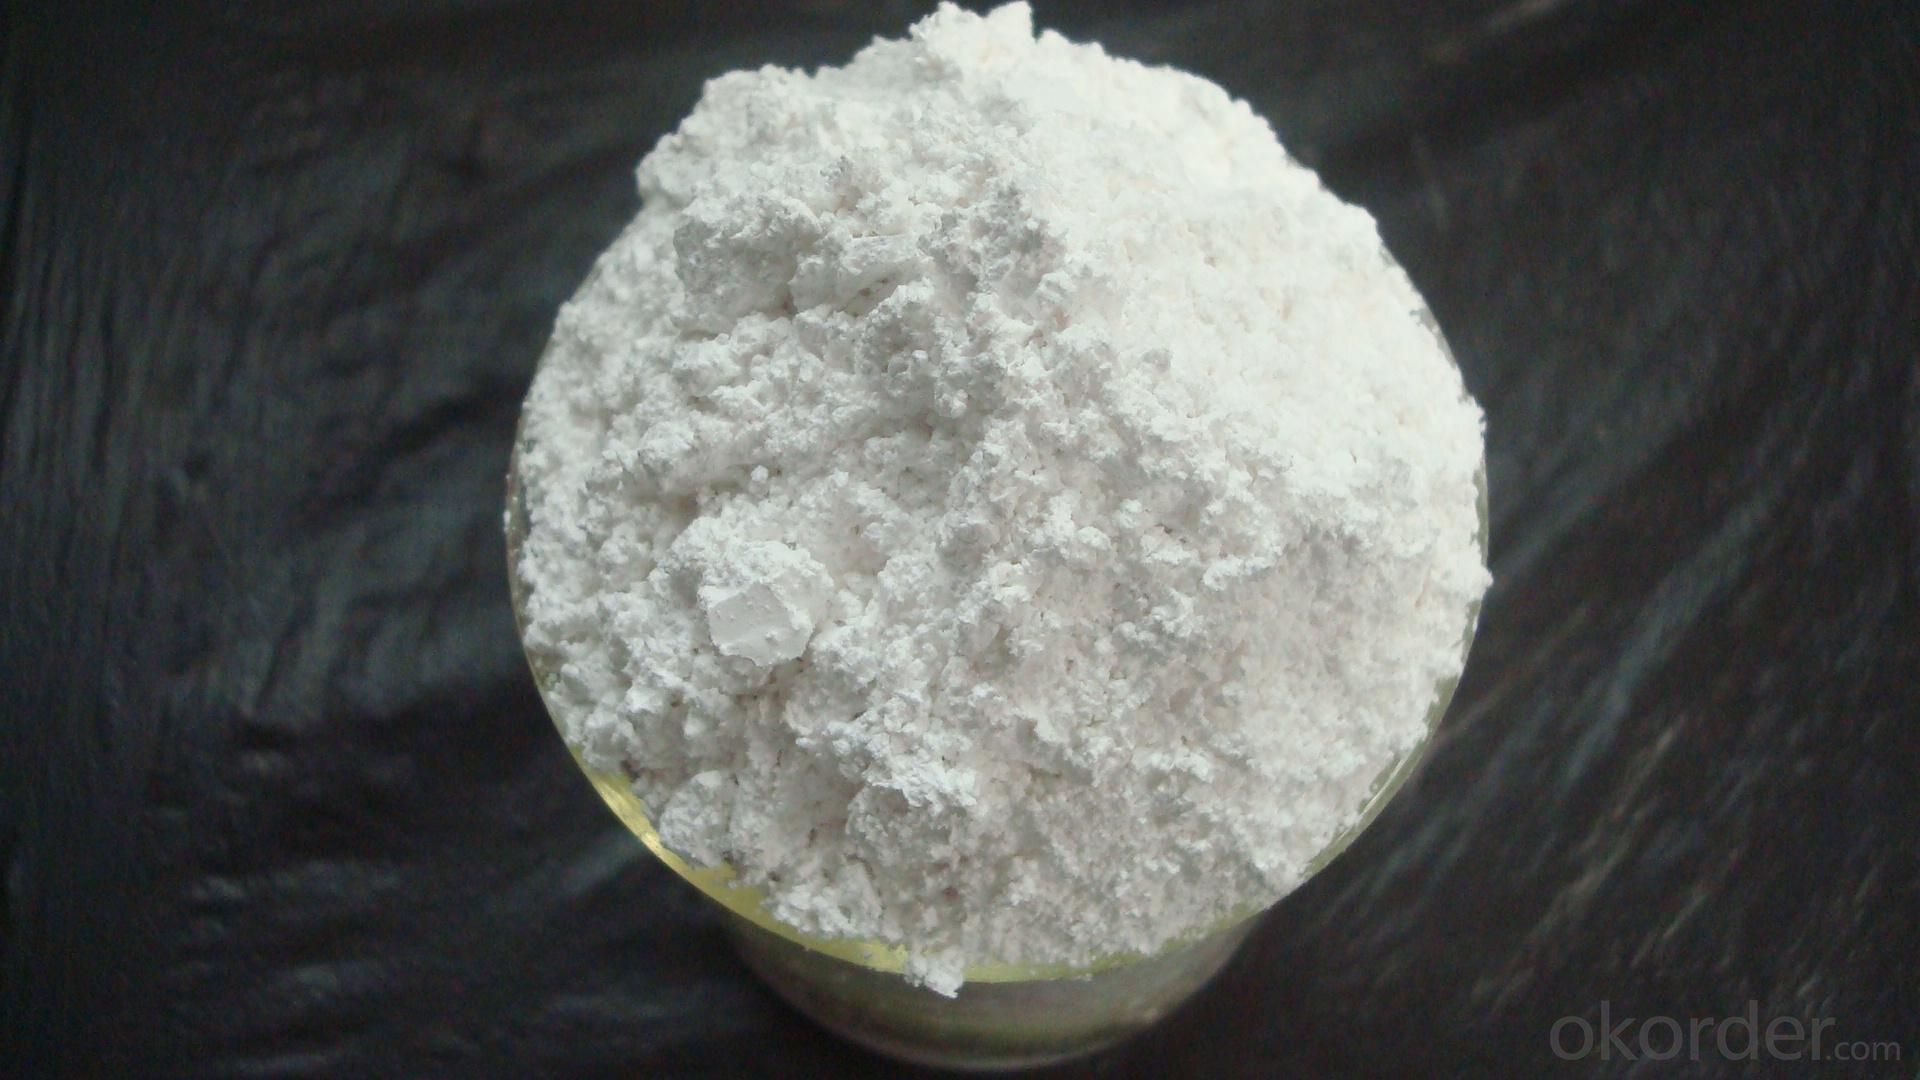 Nano Precipitated Calcium Carbonate